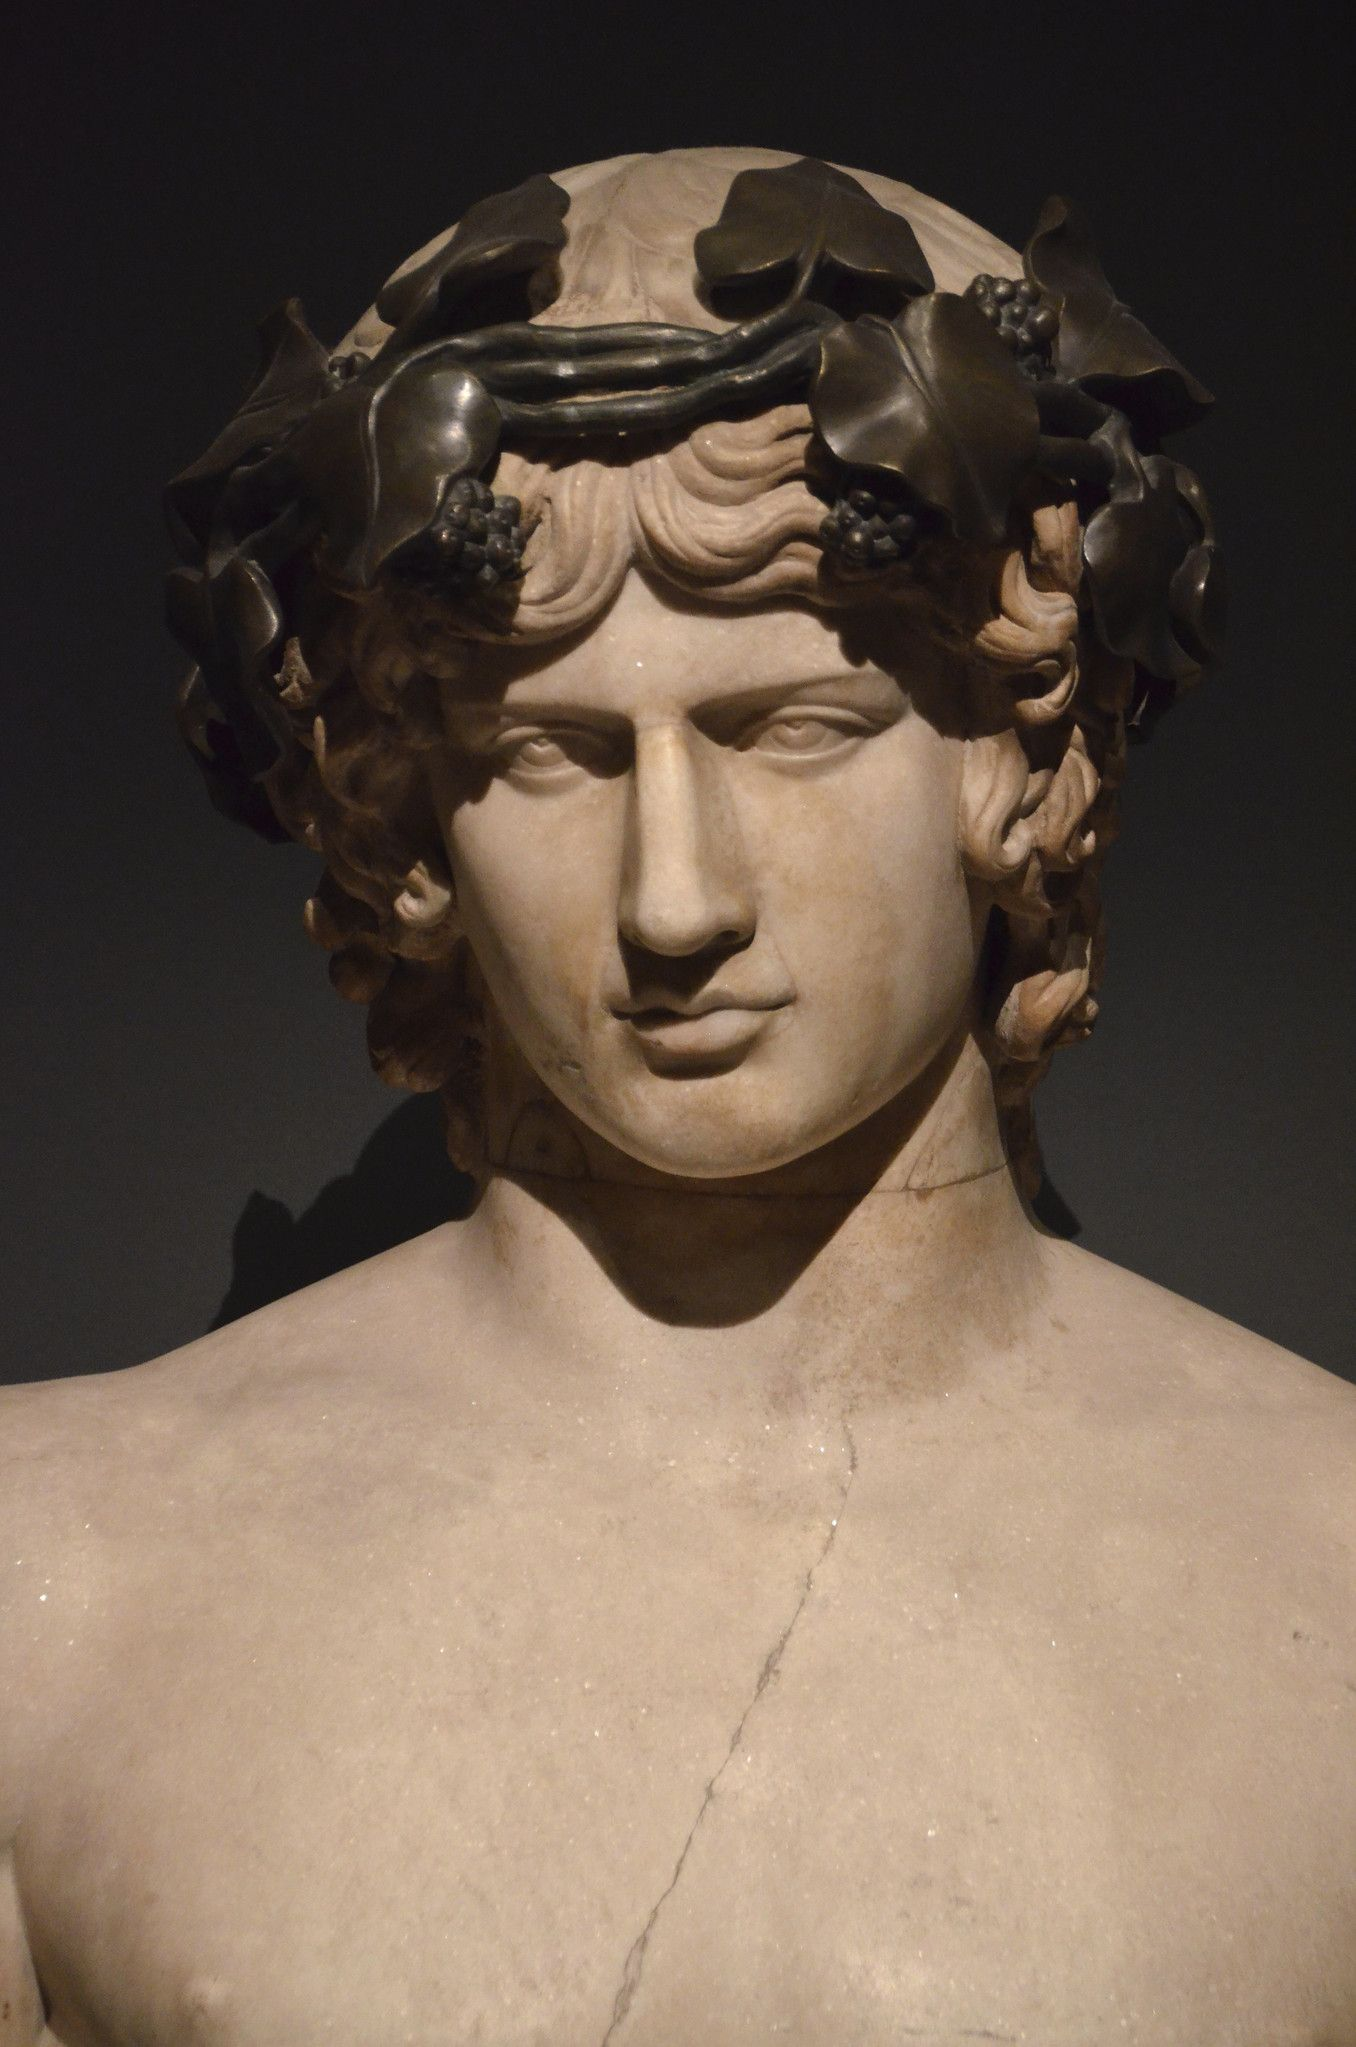 Marble bust of Antinous, on loan from the Hermitage Museum, Exhibition: A Dream of Italy The Marquis Campana's Collection, Musée du Louvre